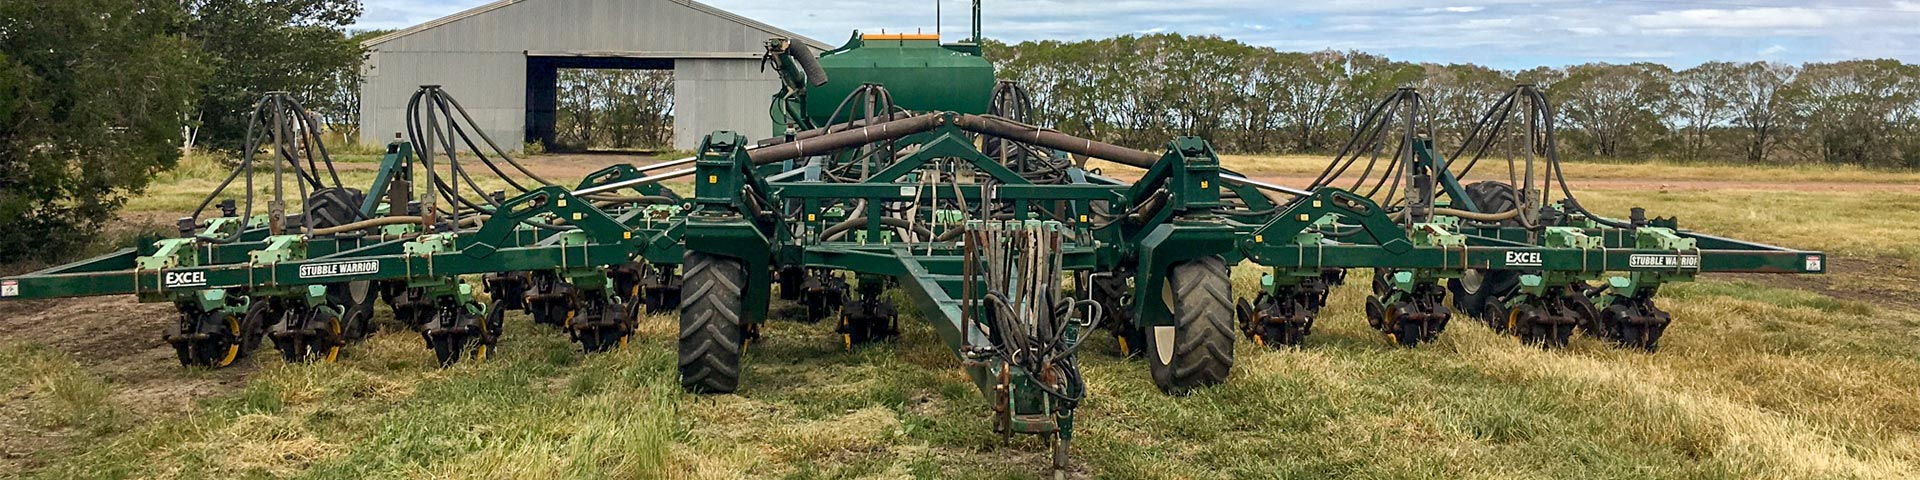 Agricultural Consignment Machinery examples